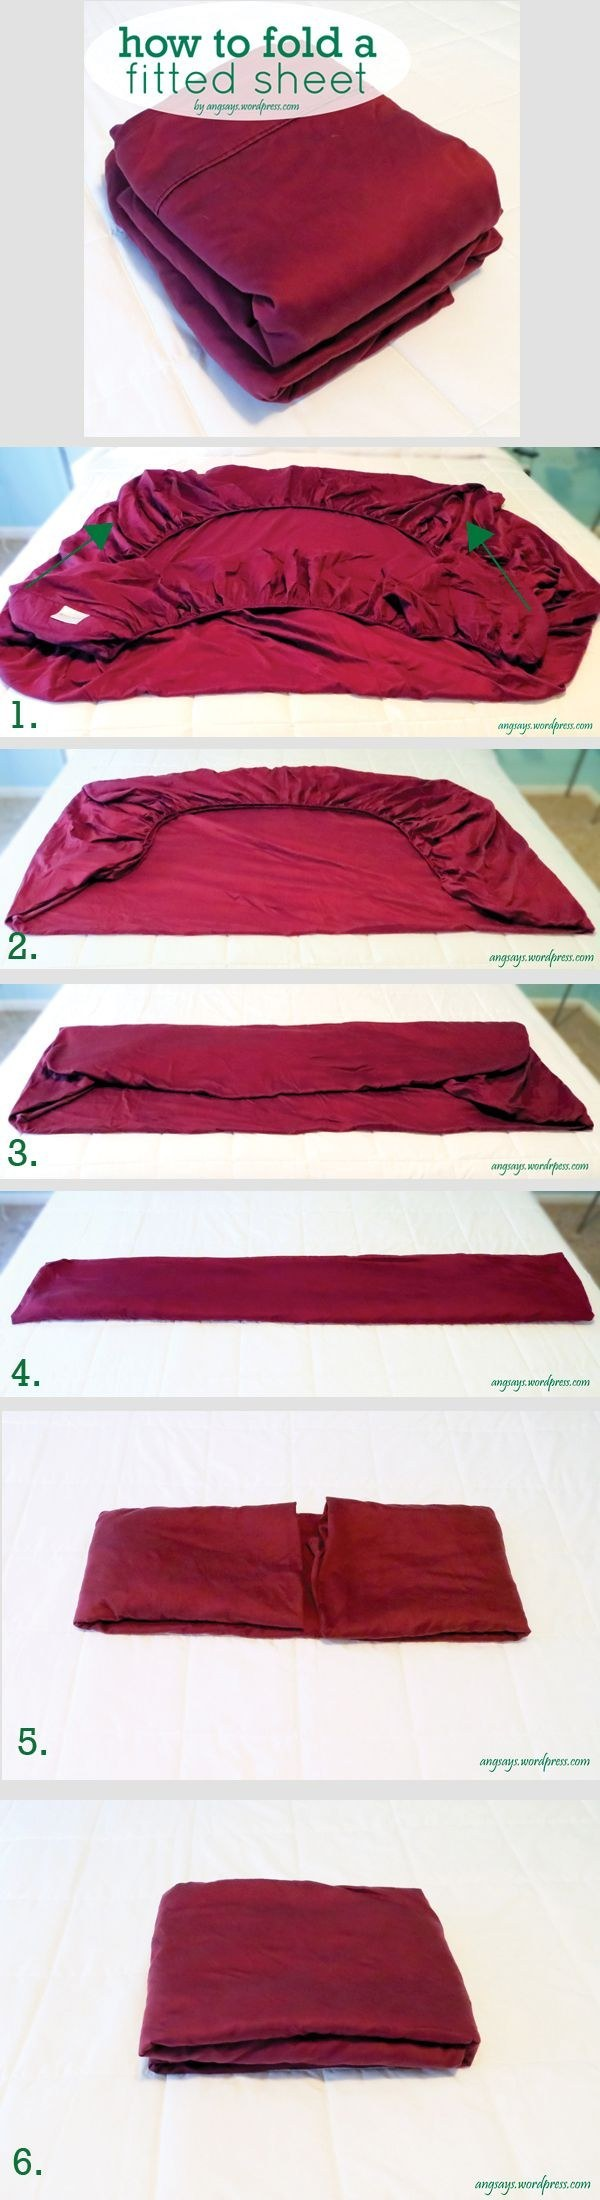 How to (finally) organize your linen closet - folding a dreaded fitted sheet